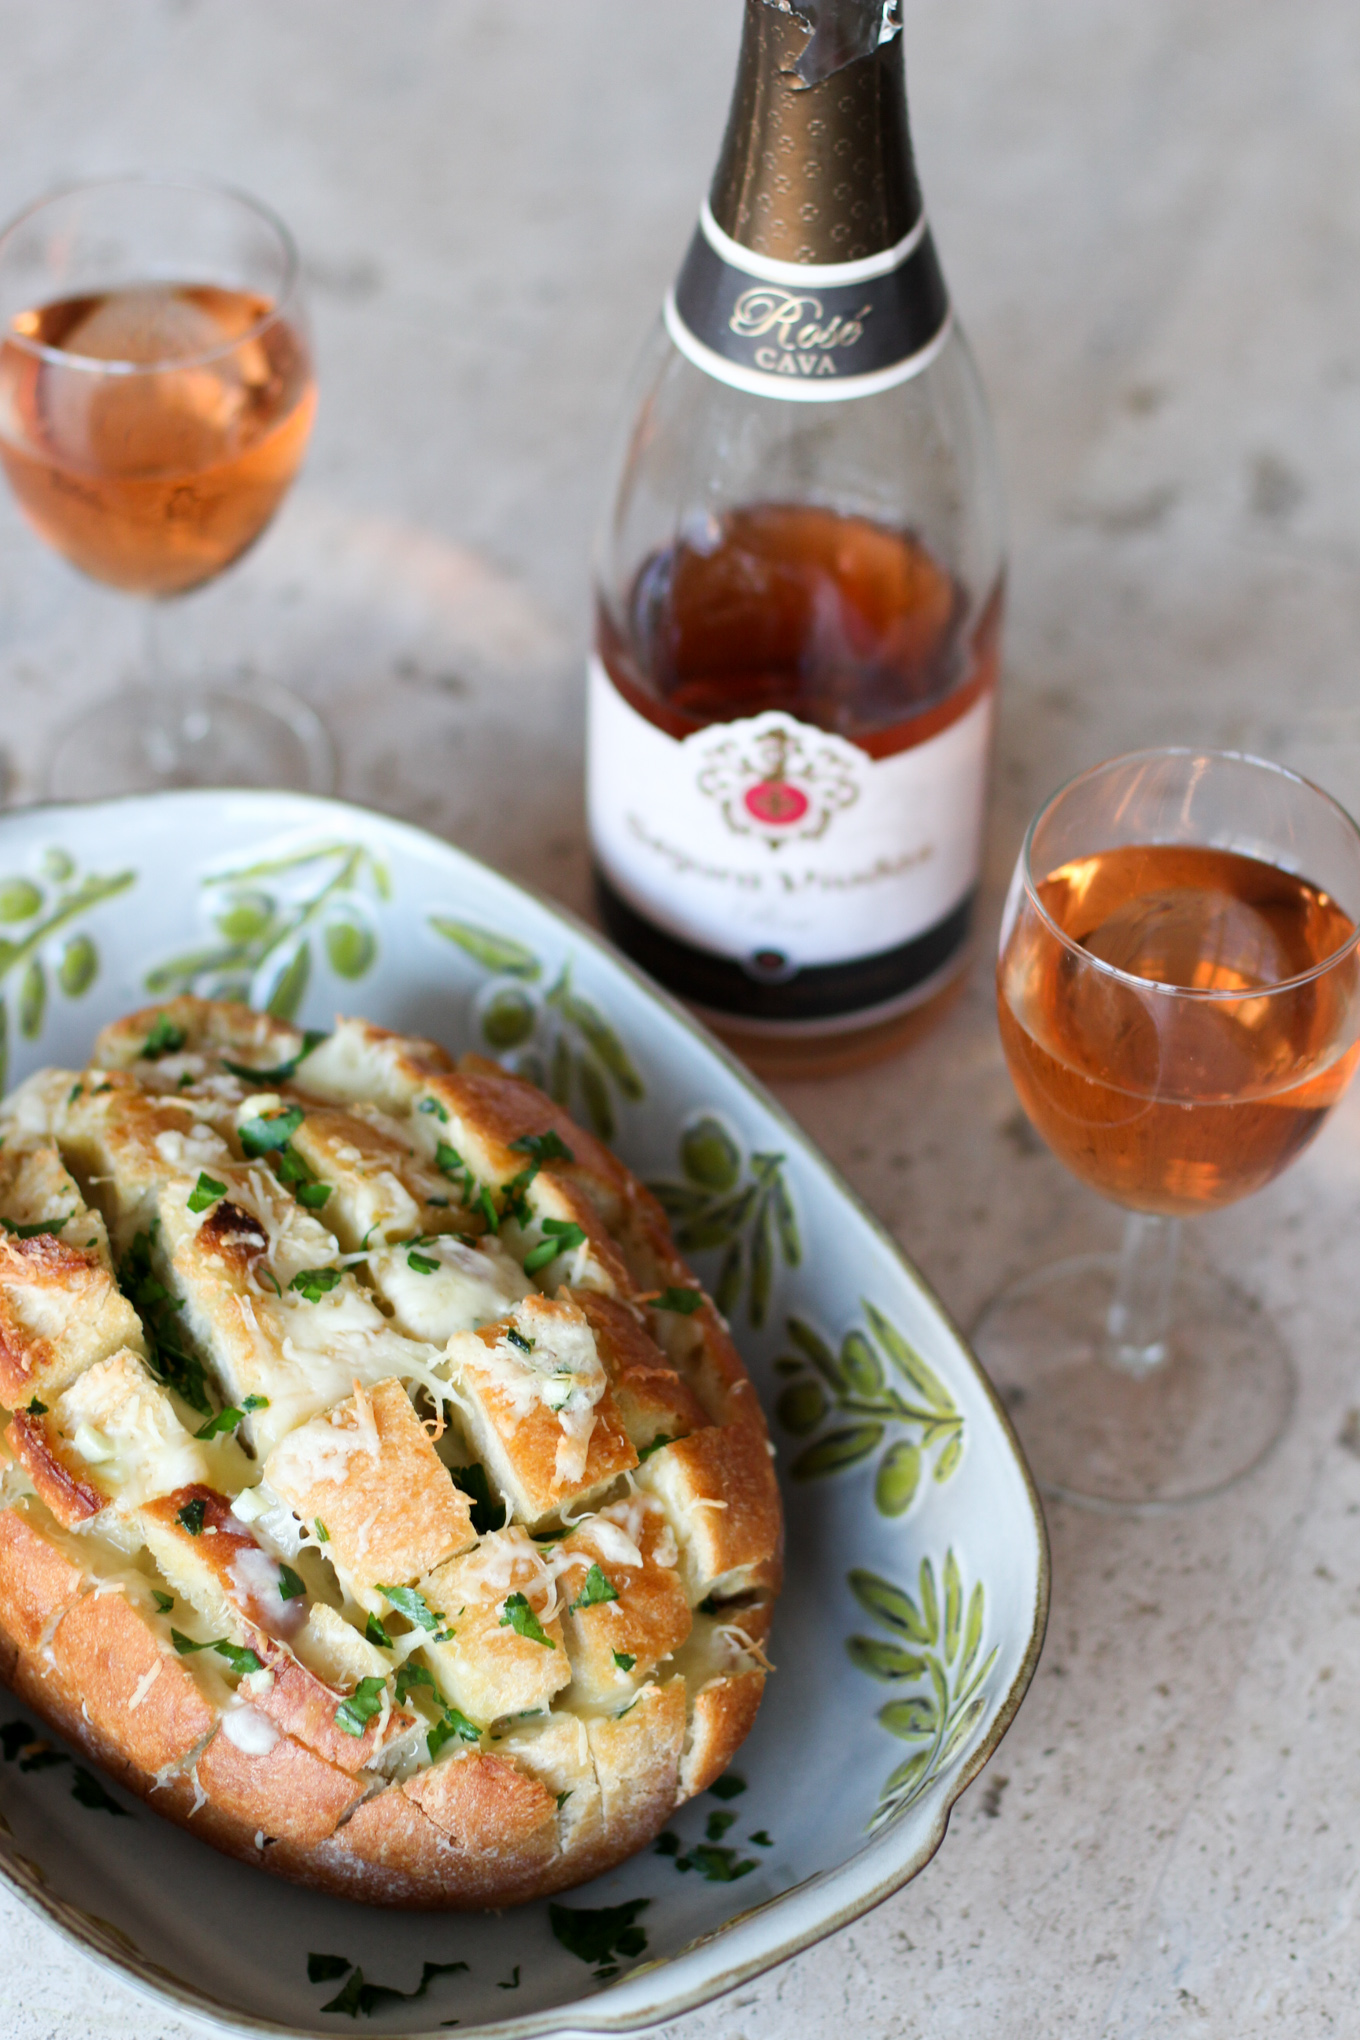 Cheesy Garlic Pull Apart Bread + Rosé Cava - Lake Shore Lady